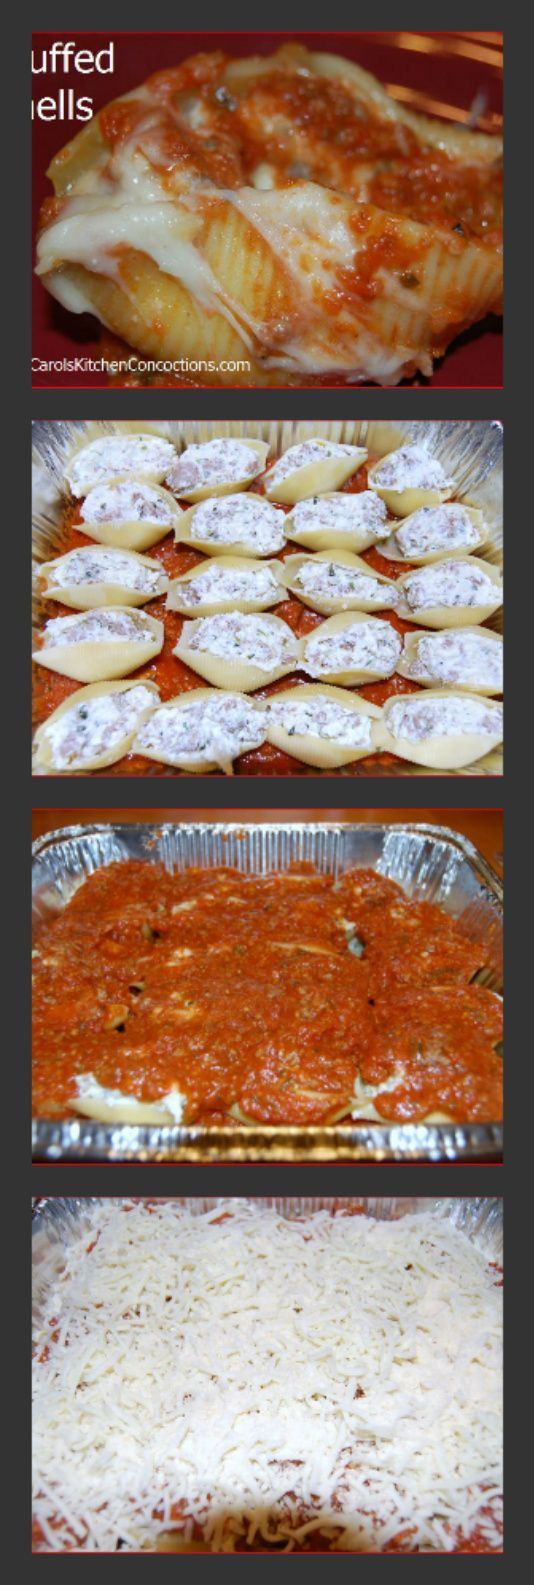 How to make stuffed shells. My all time fave special occasion dinners my mom would make for me